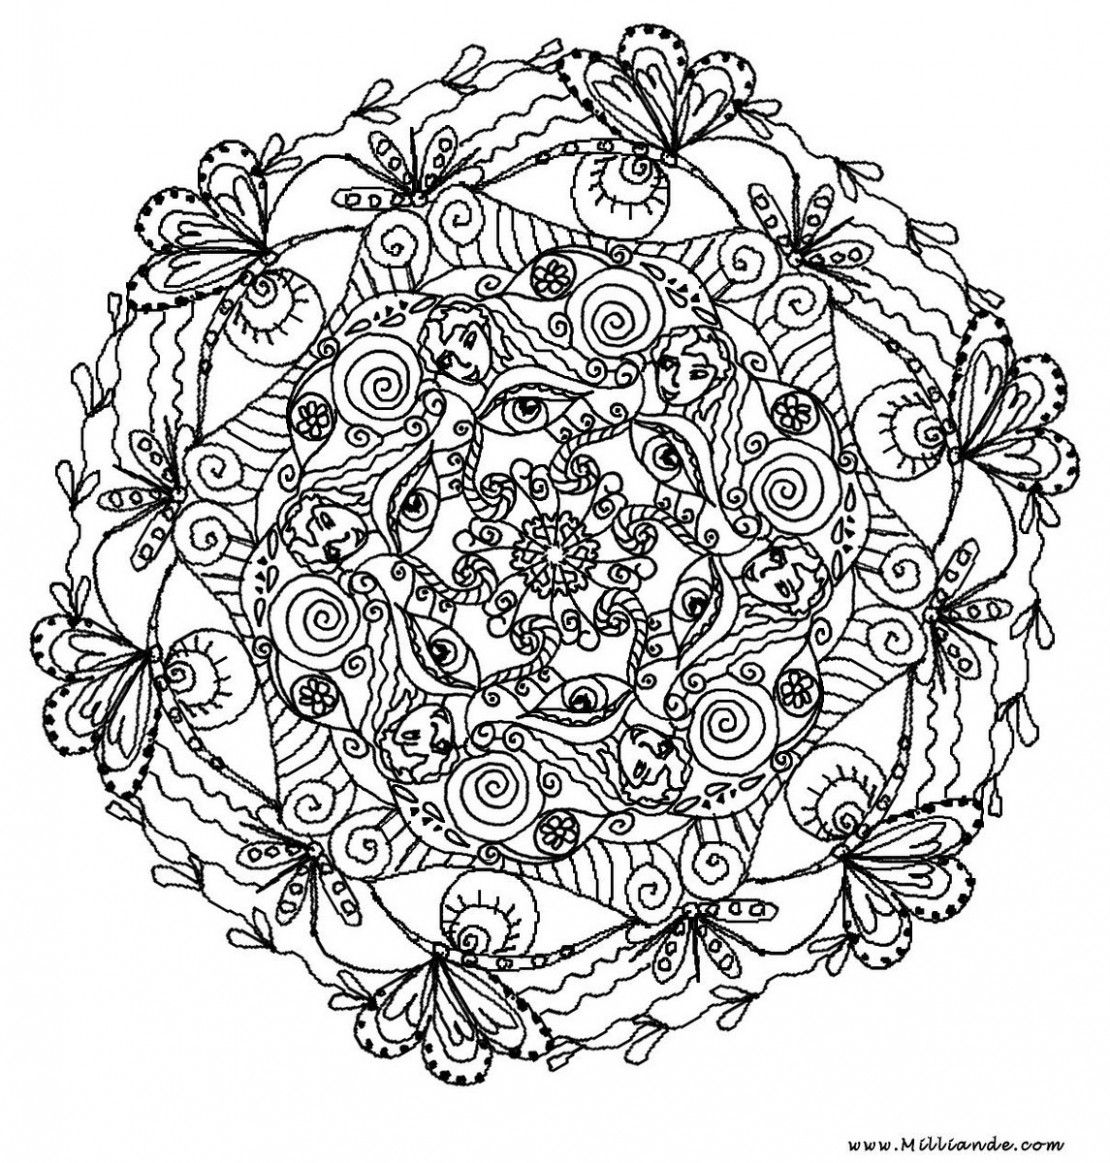 Best grown up coloring books - Cool Coloring Pages Printables High Quality Coloring Pages Download Image Grown Up